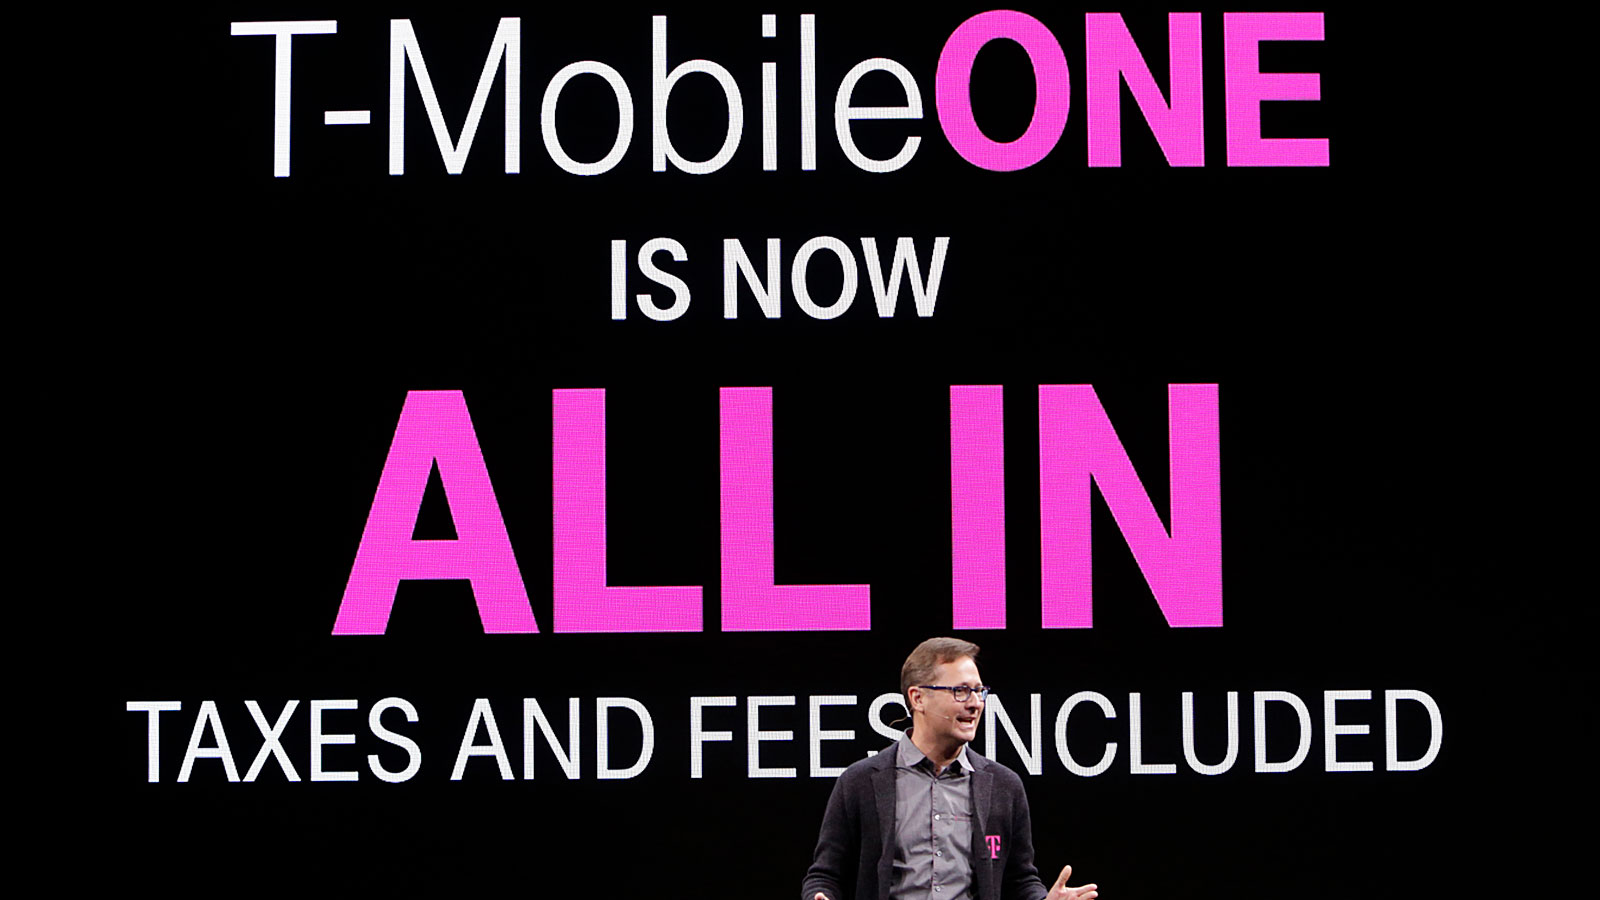 t-mobile all in pricing